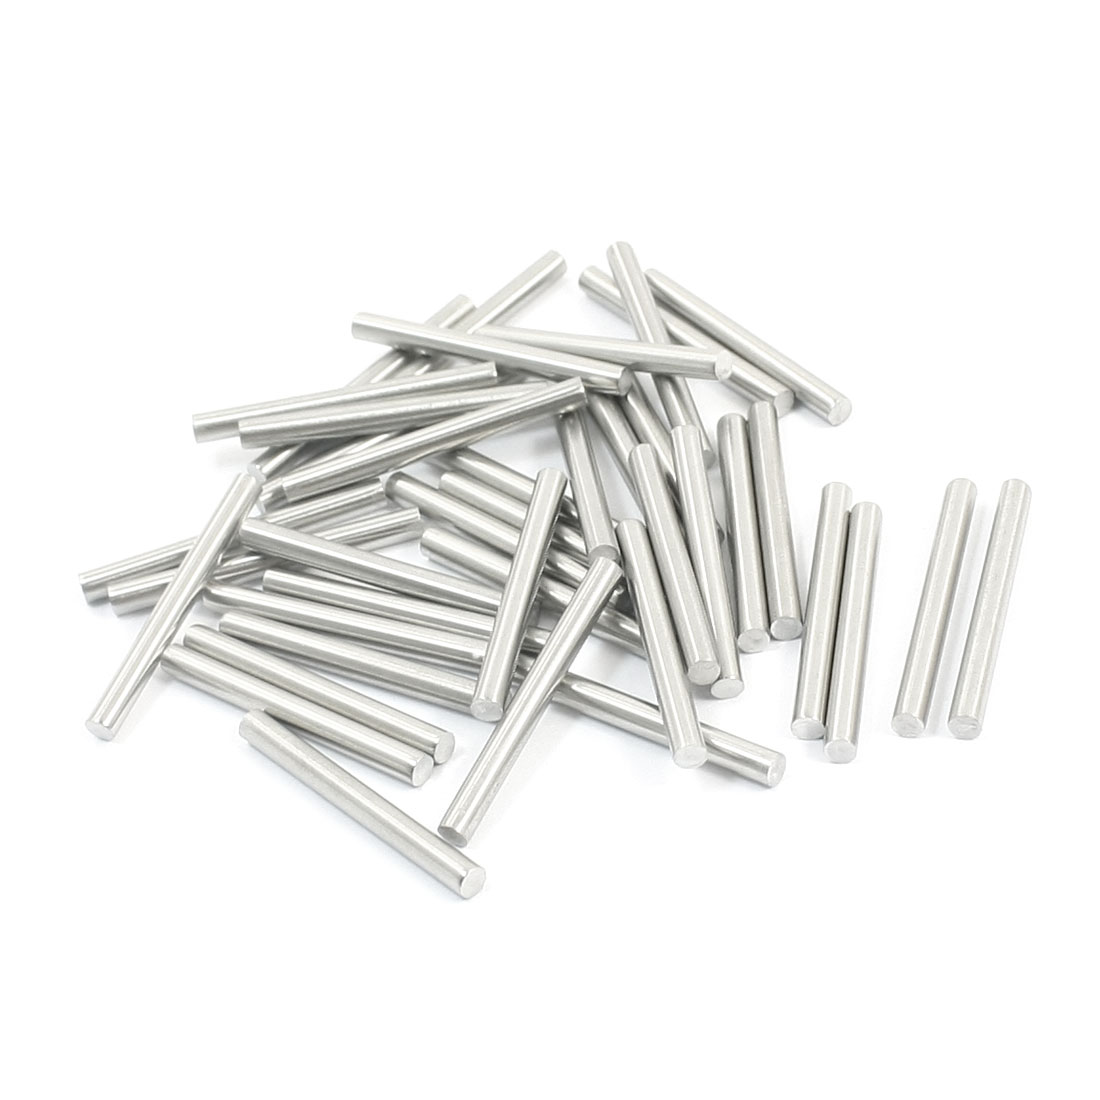 40Pcs Hardware Stainless Steel 30x3mm Transmission Lathe Round Rods